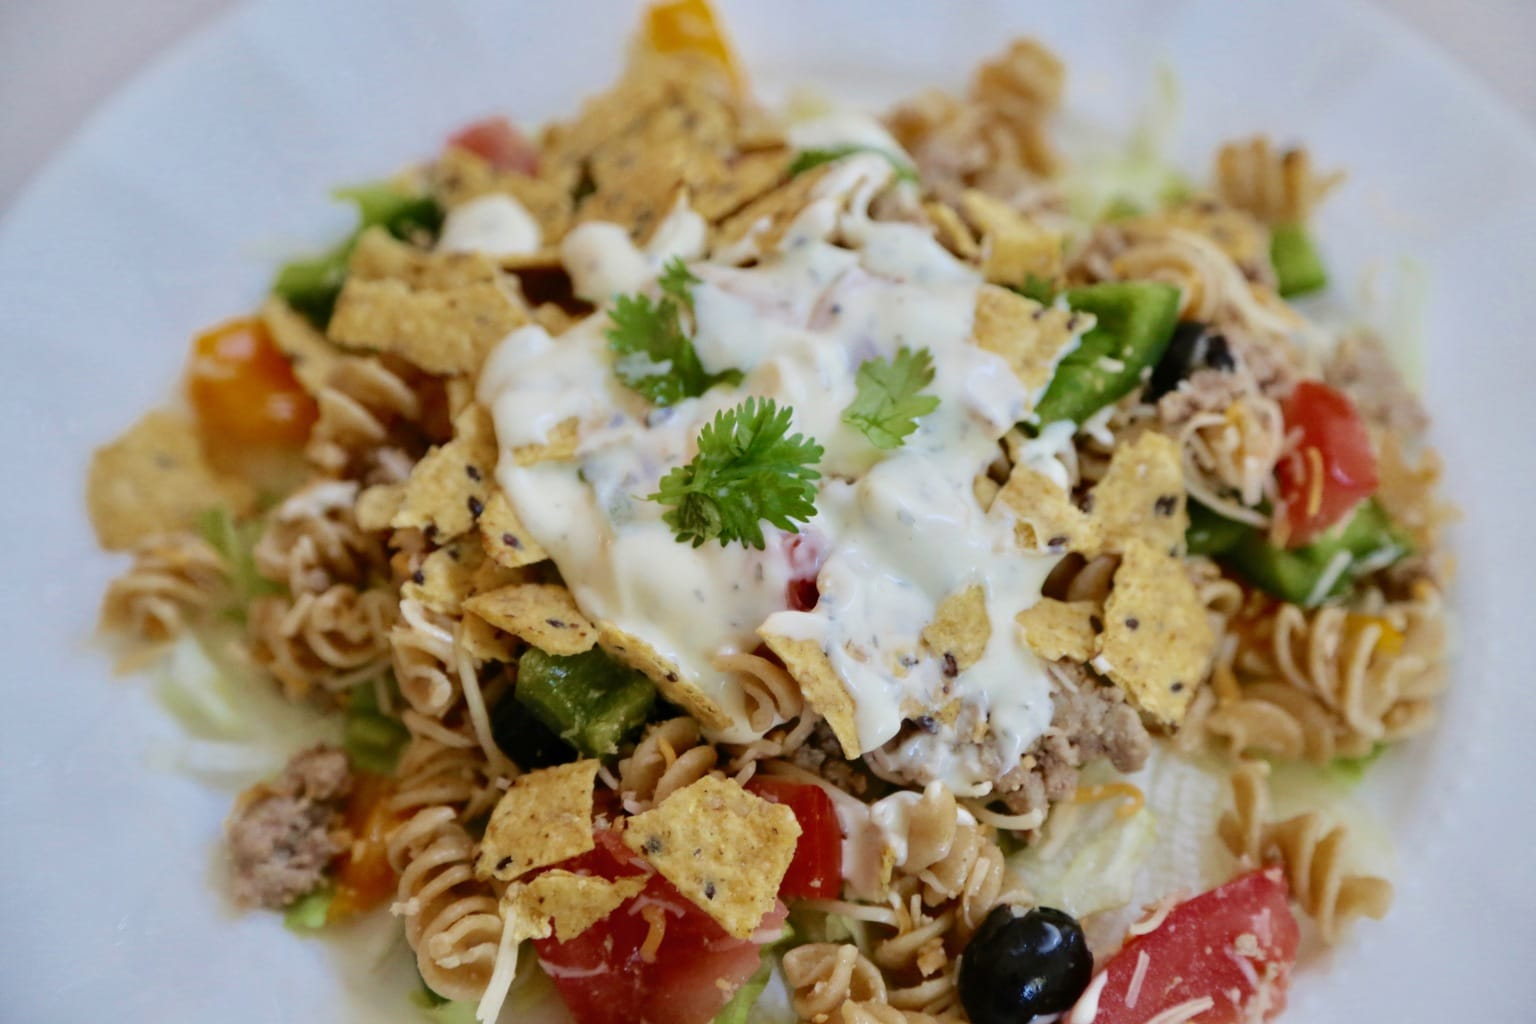 Crunchy Taco Salad with Pasta & Ranch Dressing